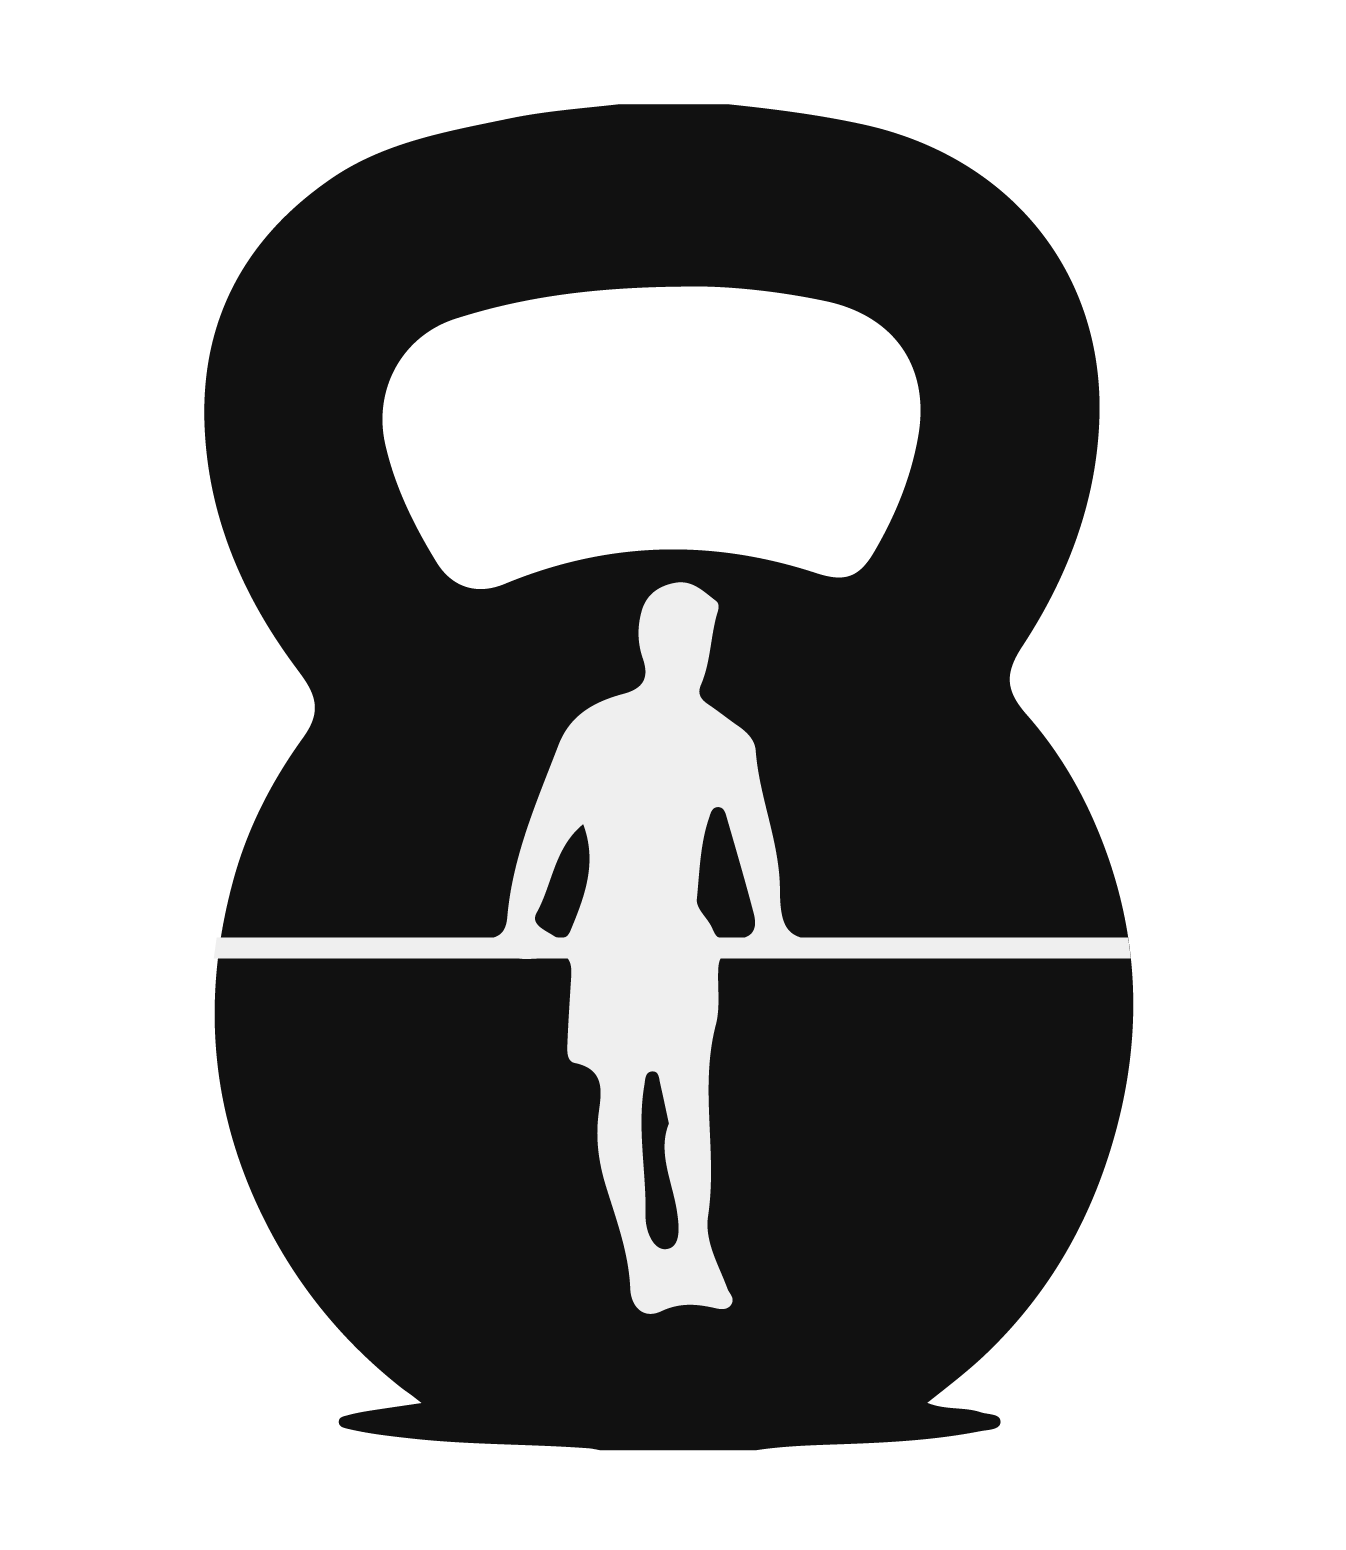 Dumbbells clipart silhouette. Kettlebell at getdrawings com